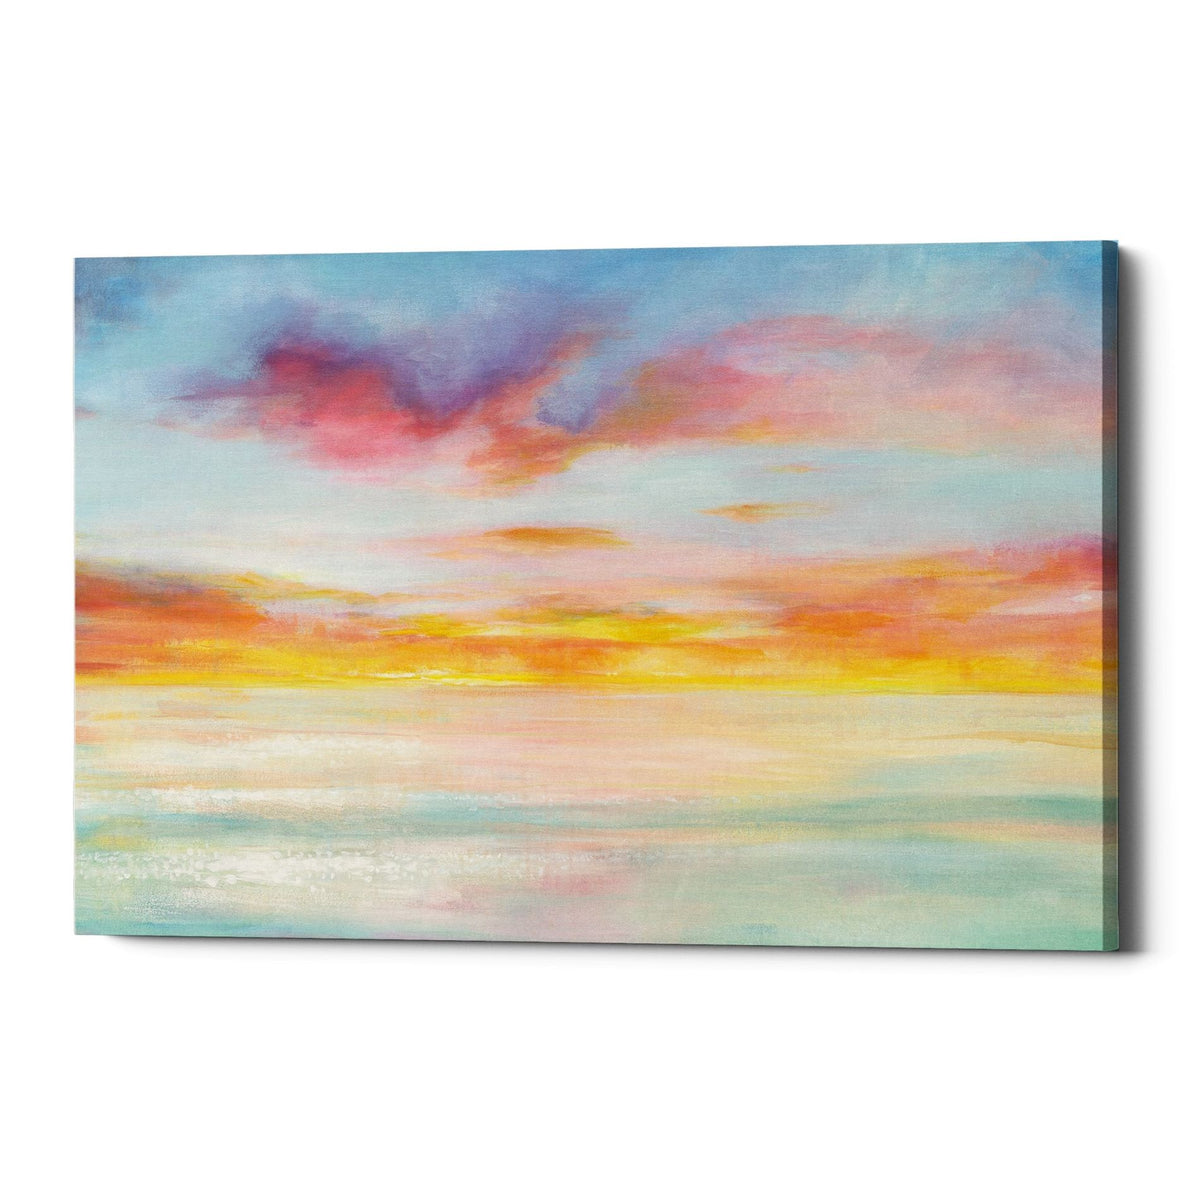 "Epic Graffiti ""Pastel Sky"" by Danhui Nai, Giclee Canvas Wall Art"